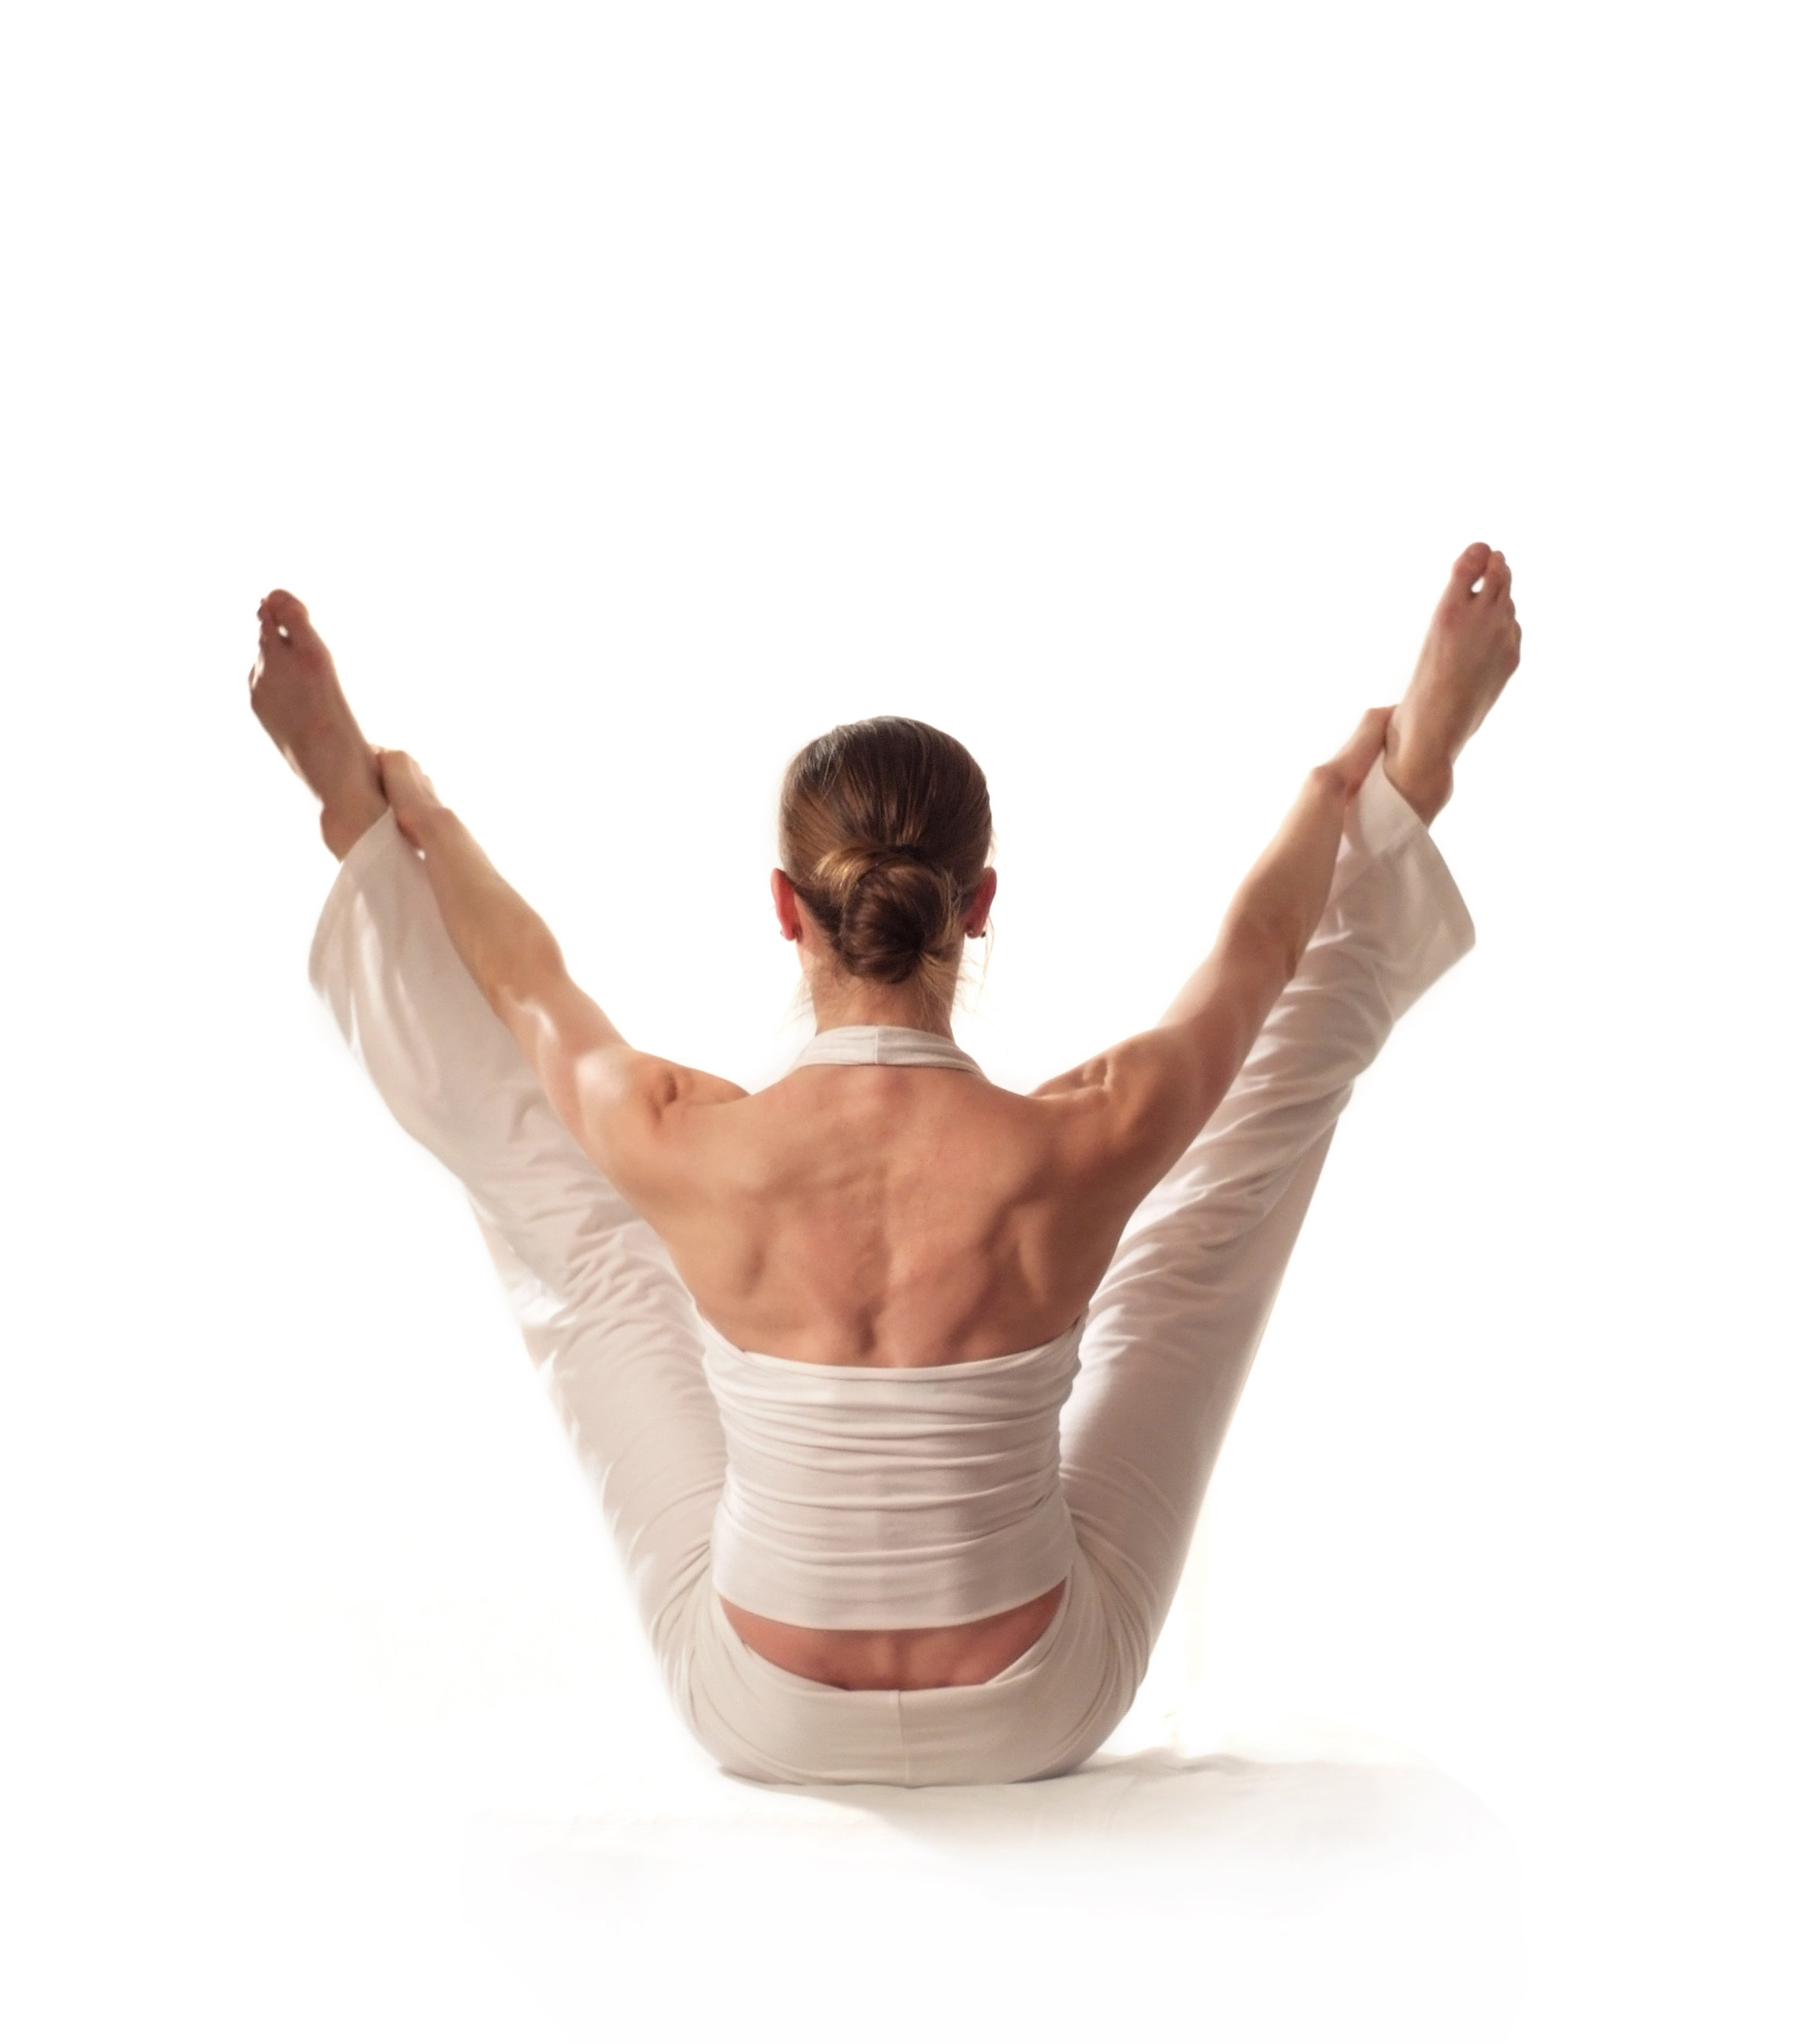 - For more information on One-On-One Pilates Mat and/or Equipment-based Training, please fill out the form below. I teach in-home private and duet lessonsin Manhattan.